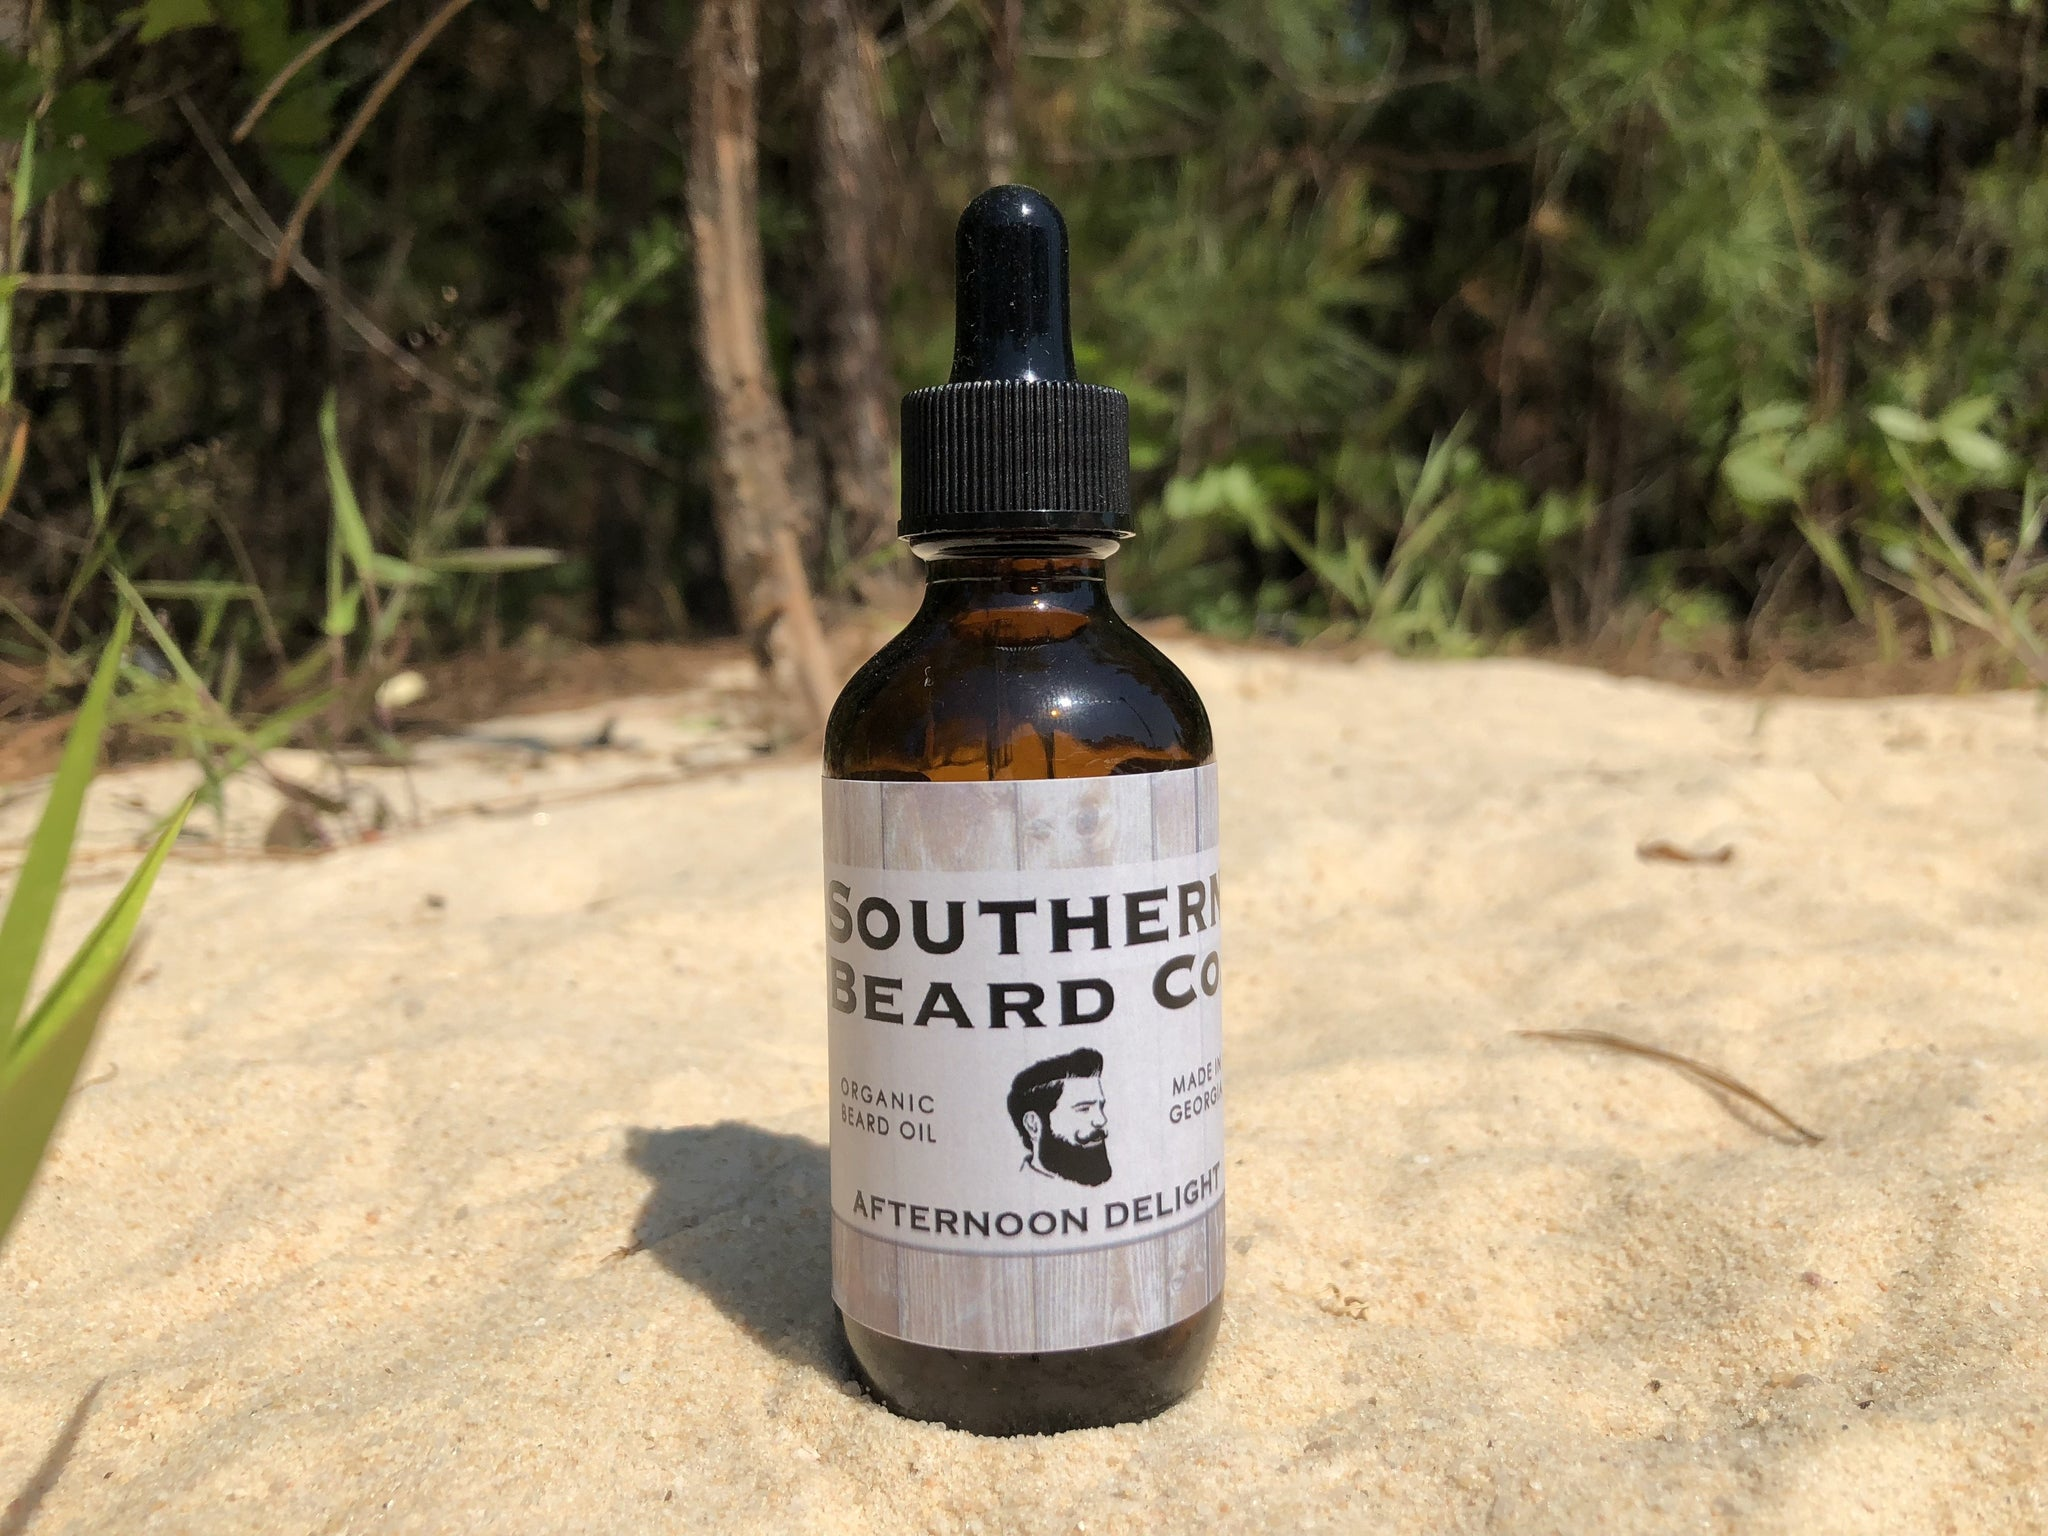 Afternoon Delight Organic Beard Oil